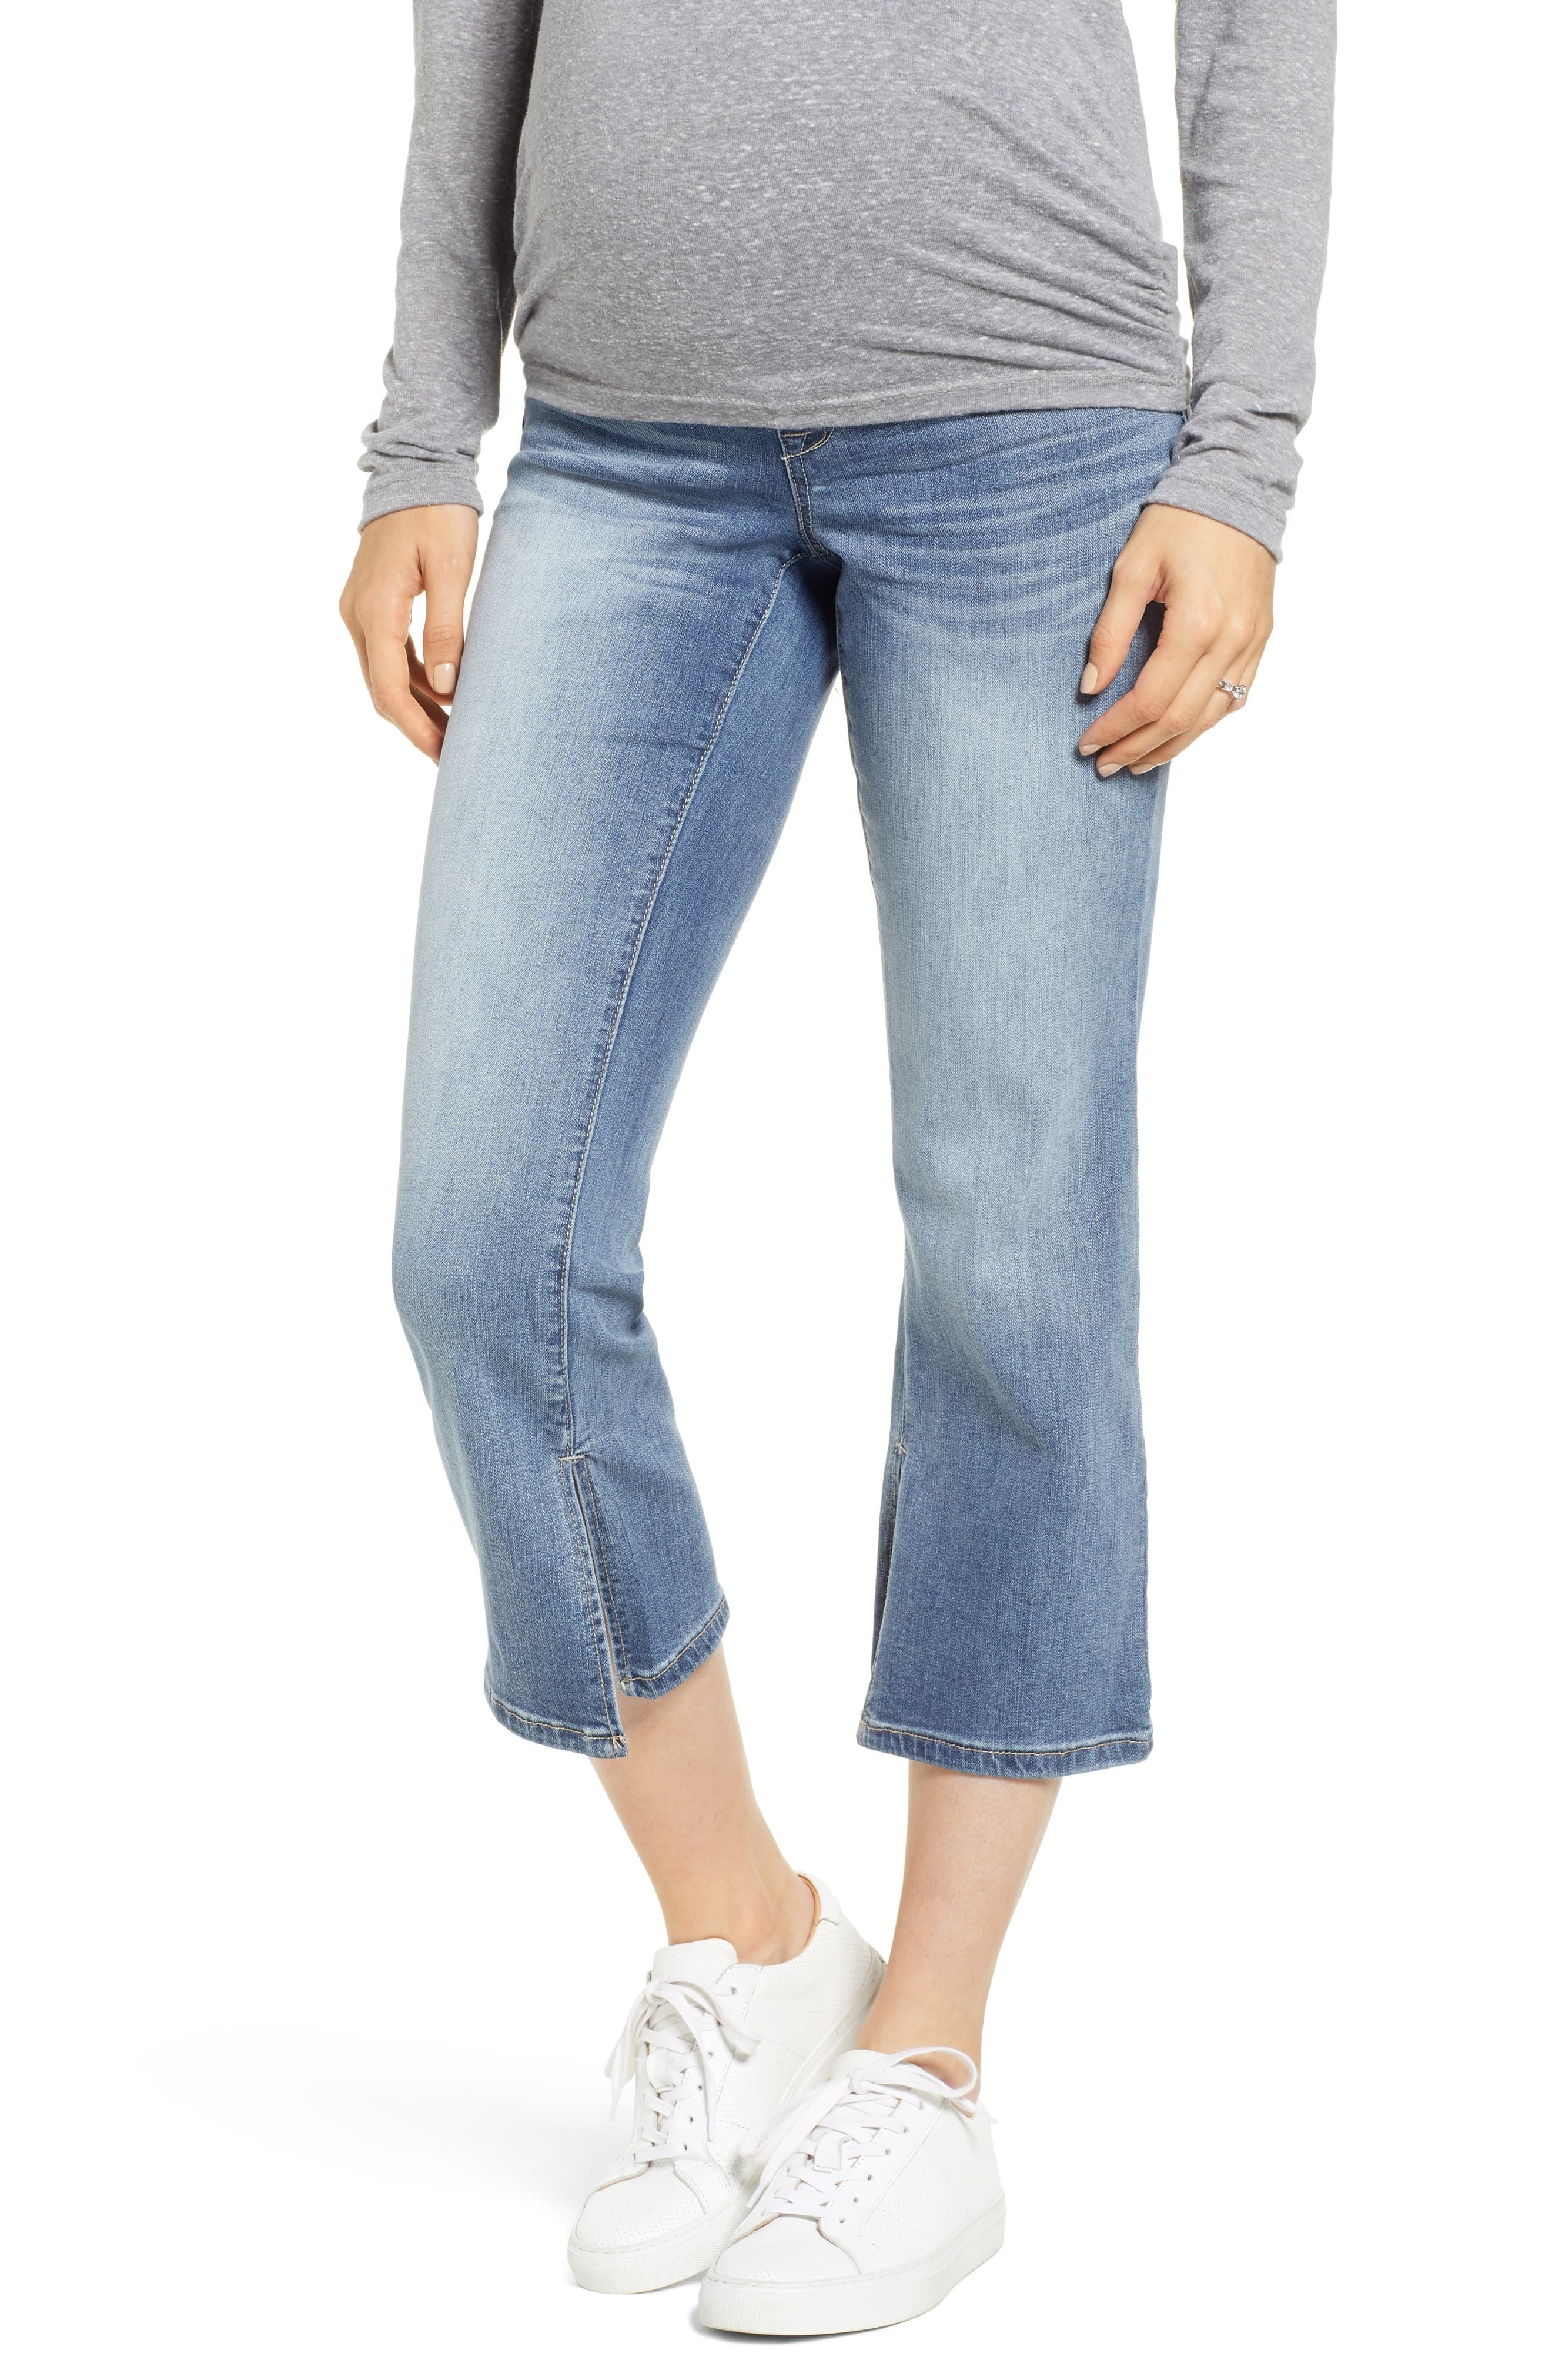 8bb3e8cee3631 Women's 1822 Denim Slit Cuff Bootcut Maternity Jeans, Size 24 - Blue ...